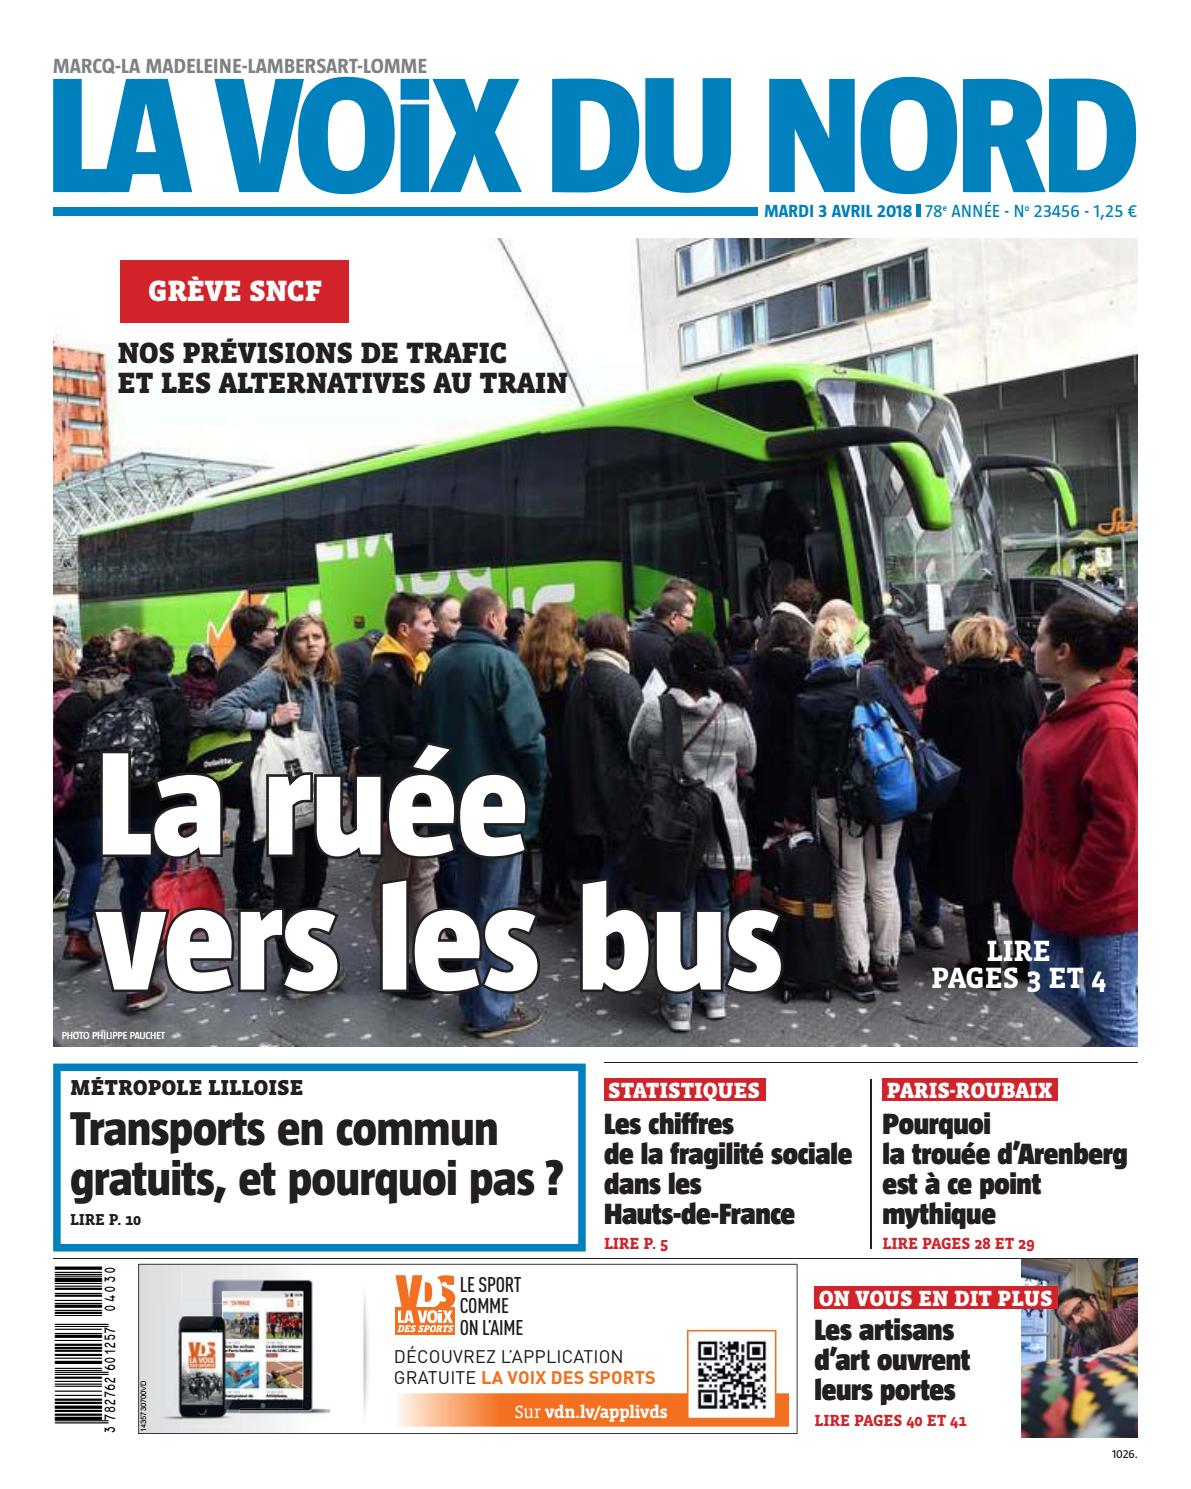 20180403 Issuu Vdn Vdn By Quandlommecourt By By Quandlommecourt Quandlommecourt Vdn Issuu 20180403 20180403 ucFTlJ3K1